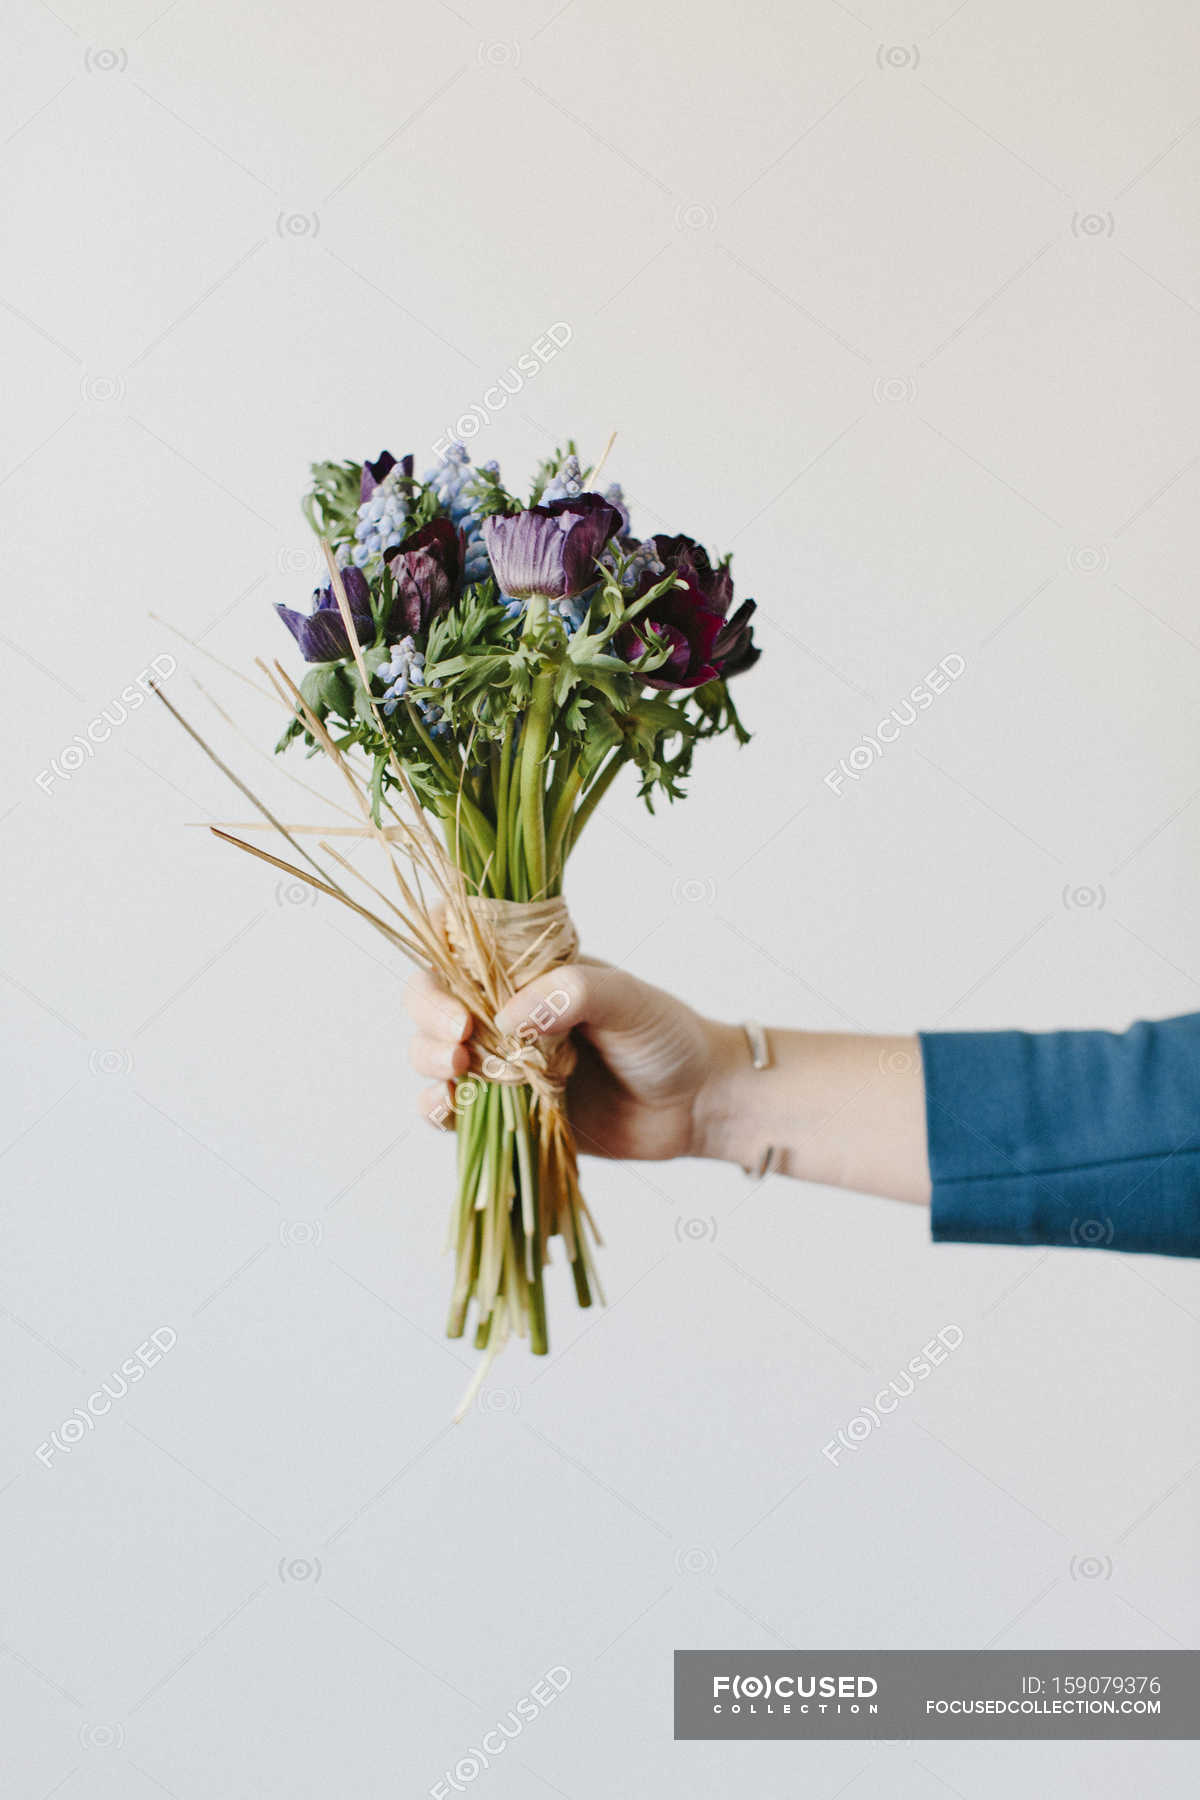 Bouquet of anemones and hyacinths flowers — Stock Photo | #159079376